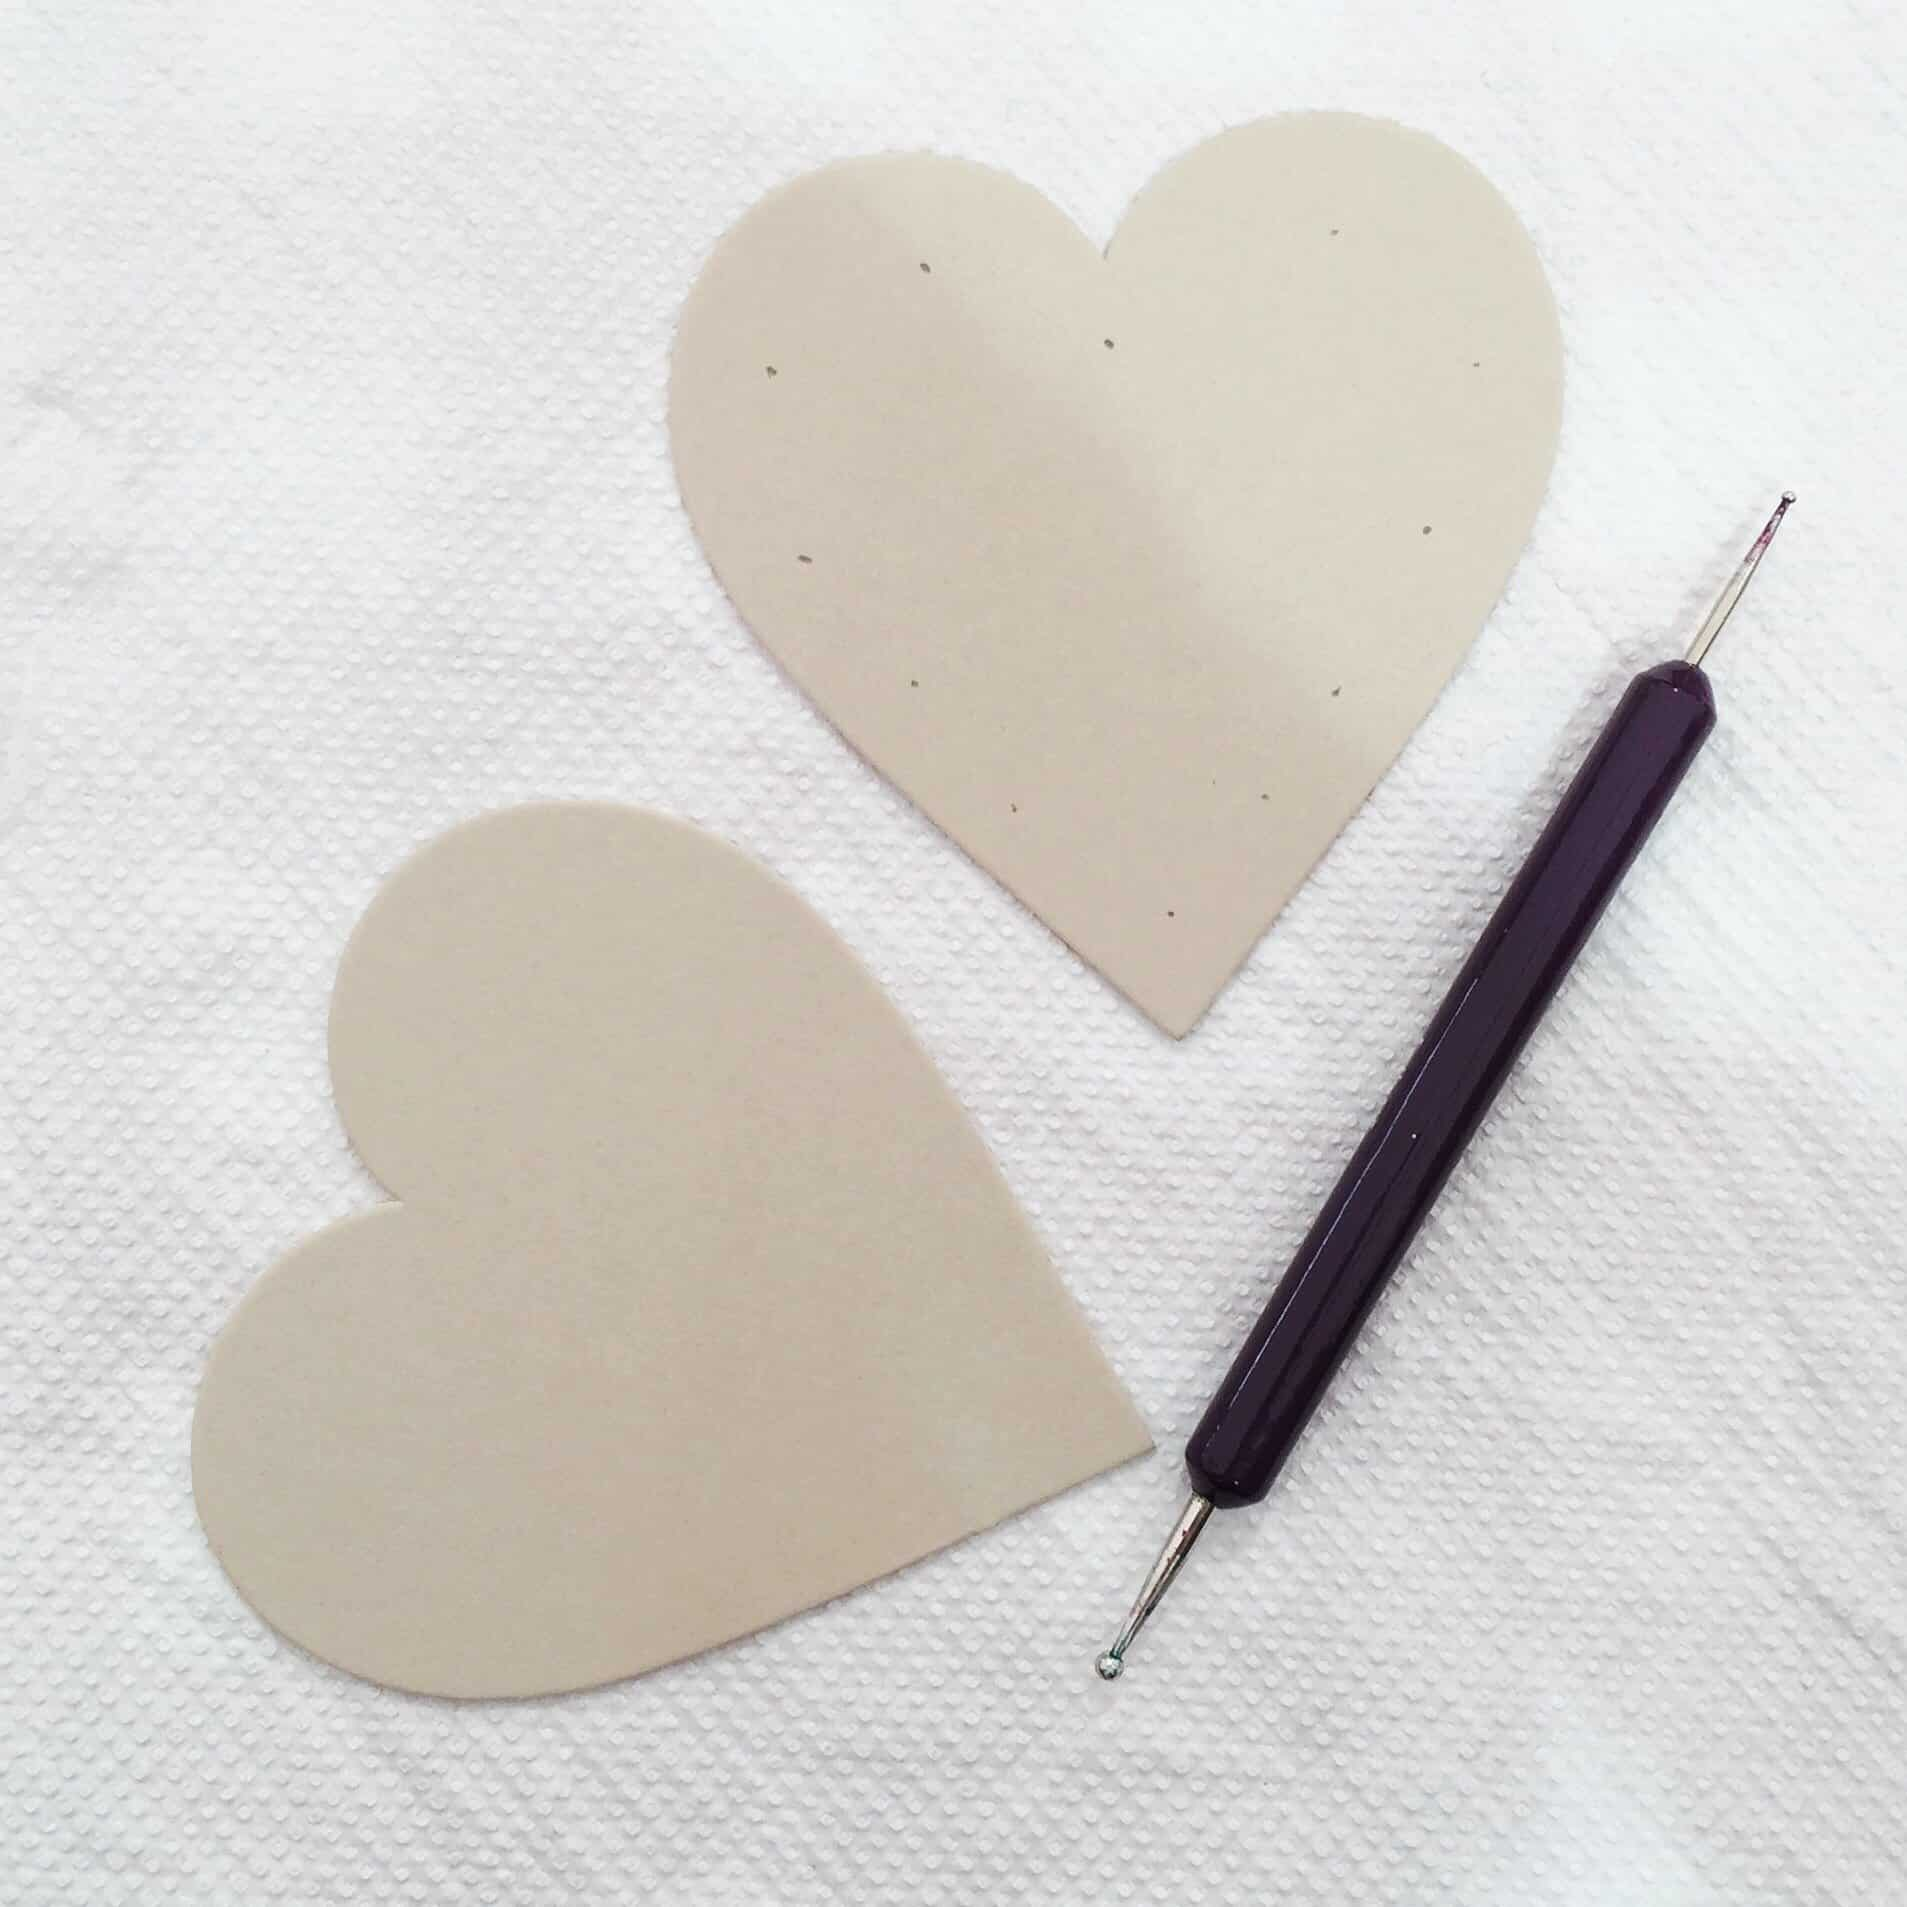 Heart and dotting tool at The Handmade Fair